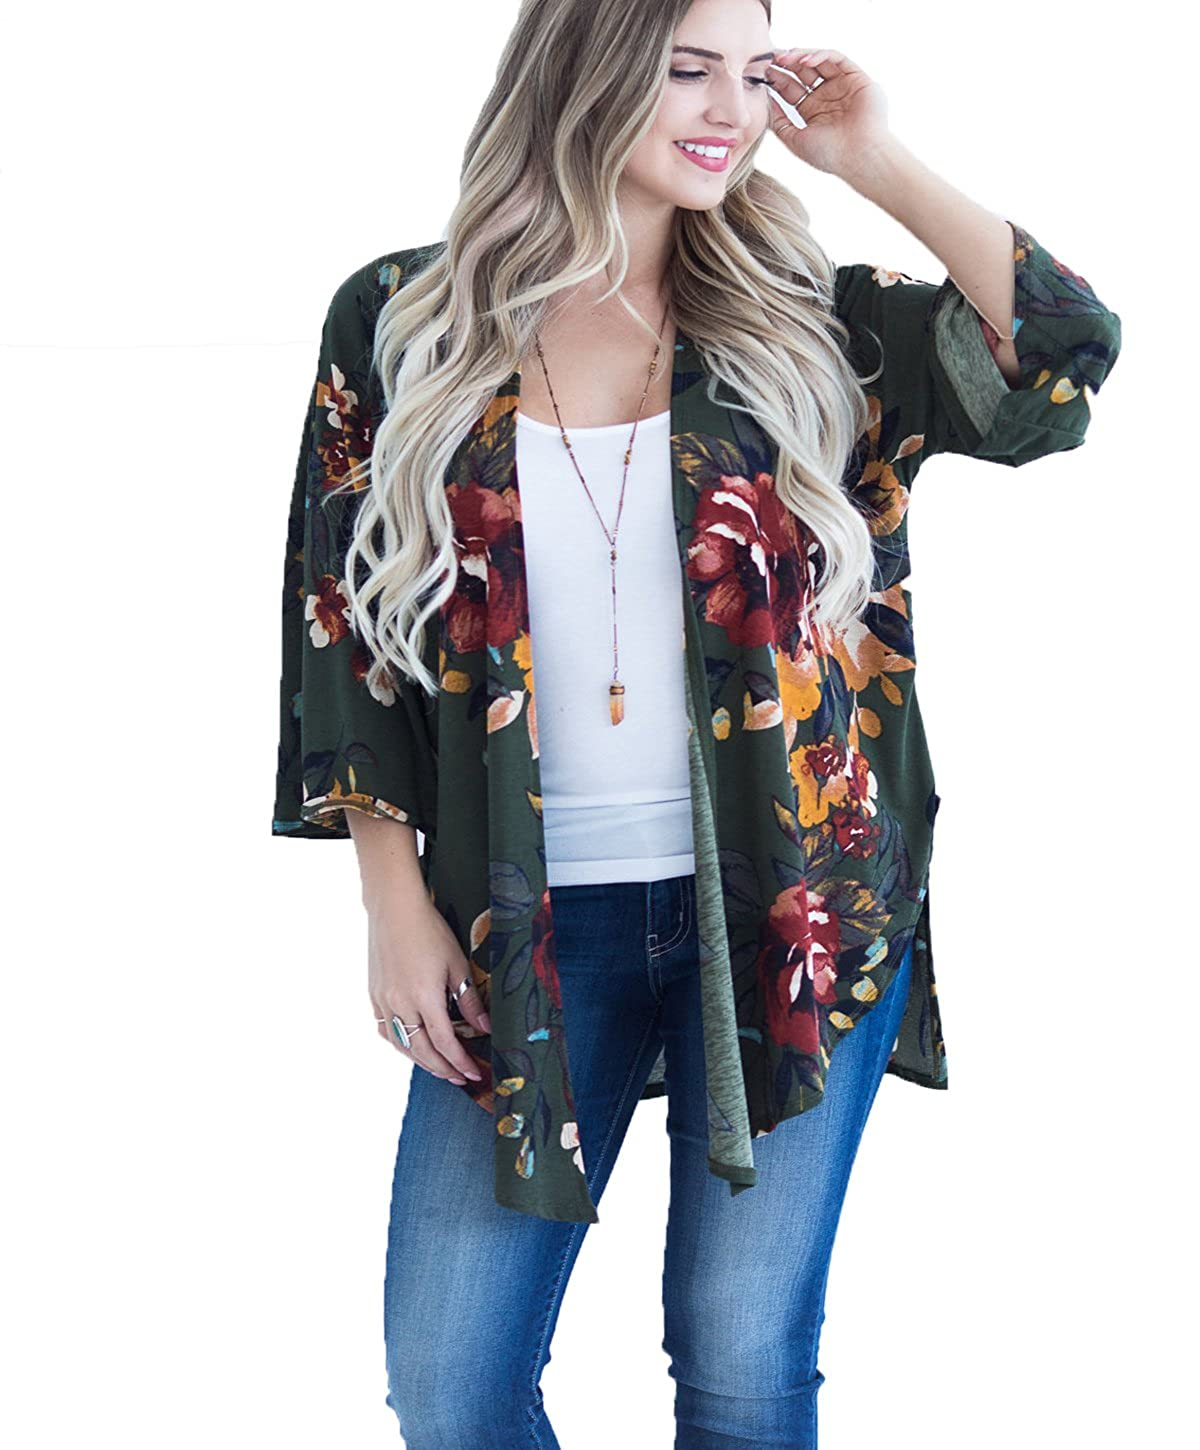 She-life Women's 3 4 Sleeve Casual Floral Cardigan Open Draped Front Kimono Tops With Side Slits SL0016_AG_S